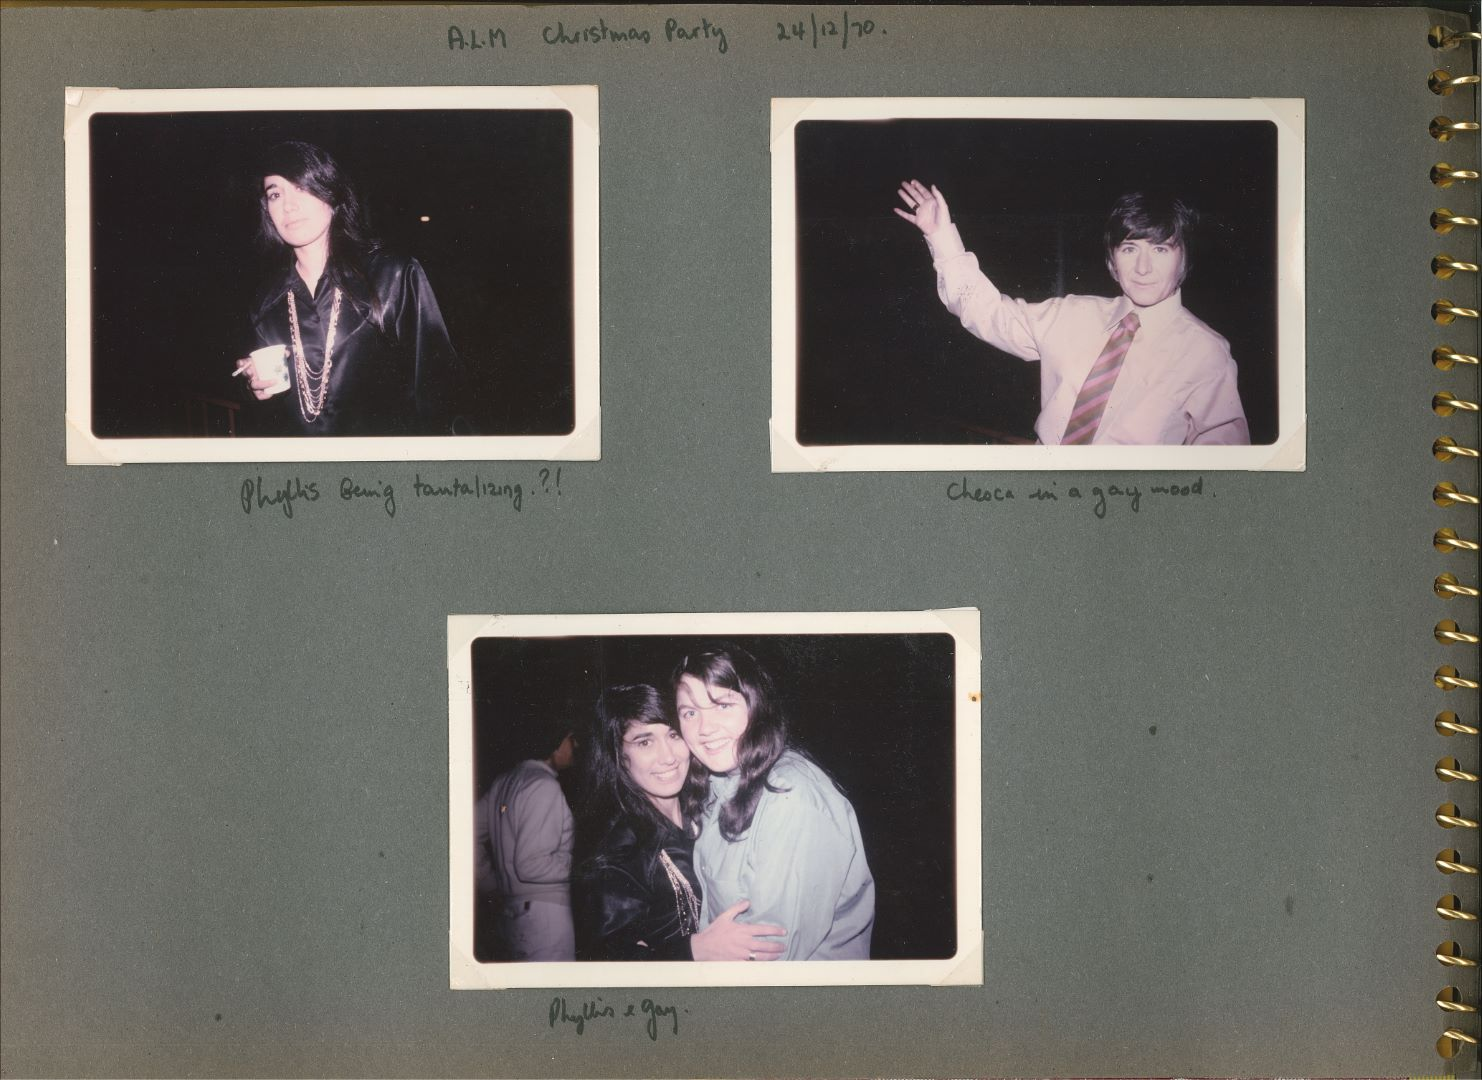 Photo album compiled by Phyllis Papps and Francesca Curtis, 1970-1972, p2, Papers of Phyllis Papps and Francesca Curtis